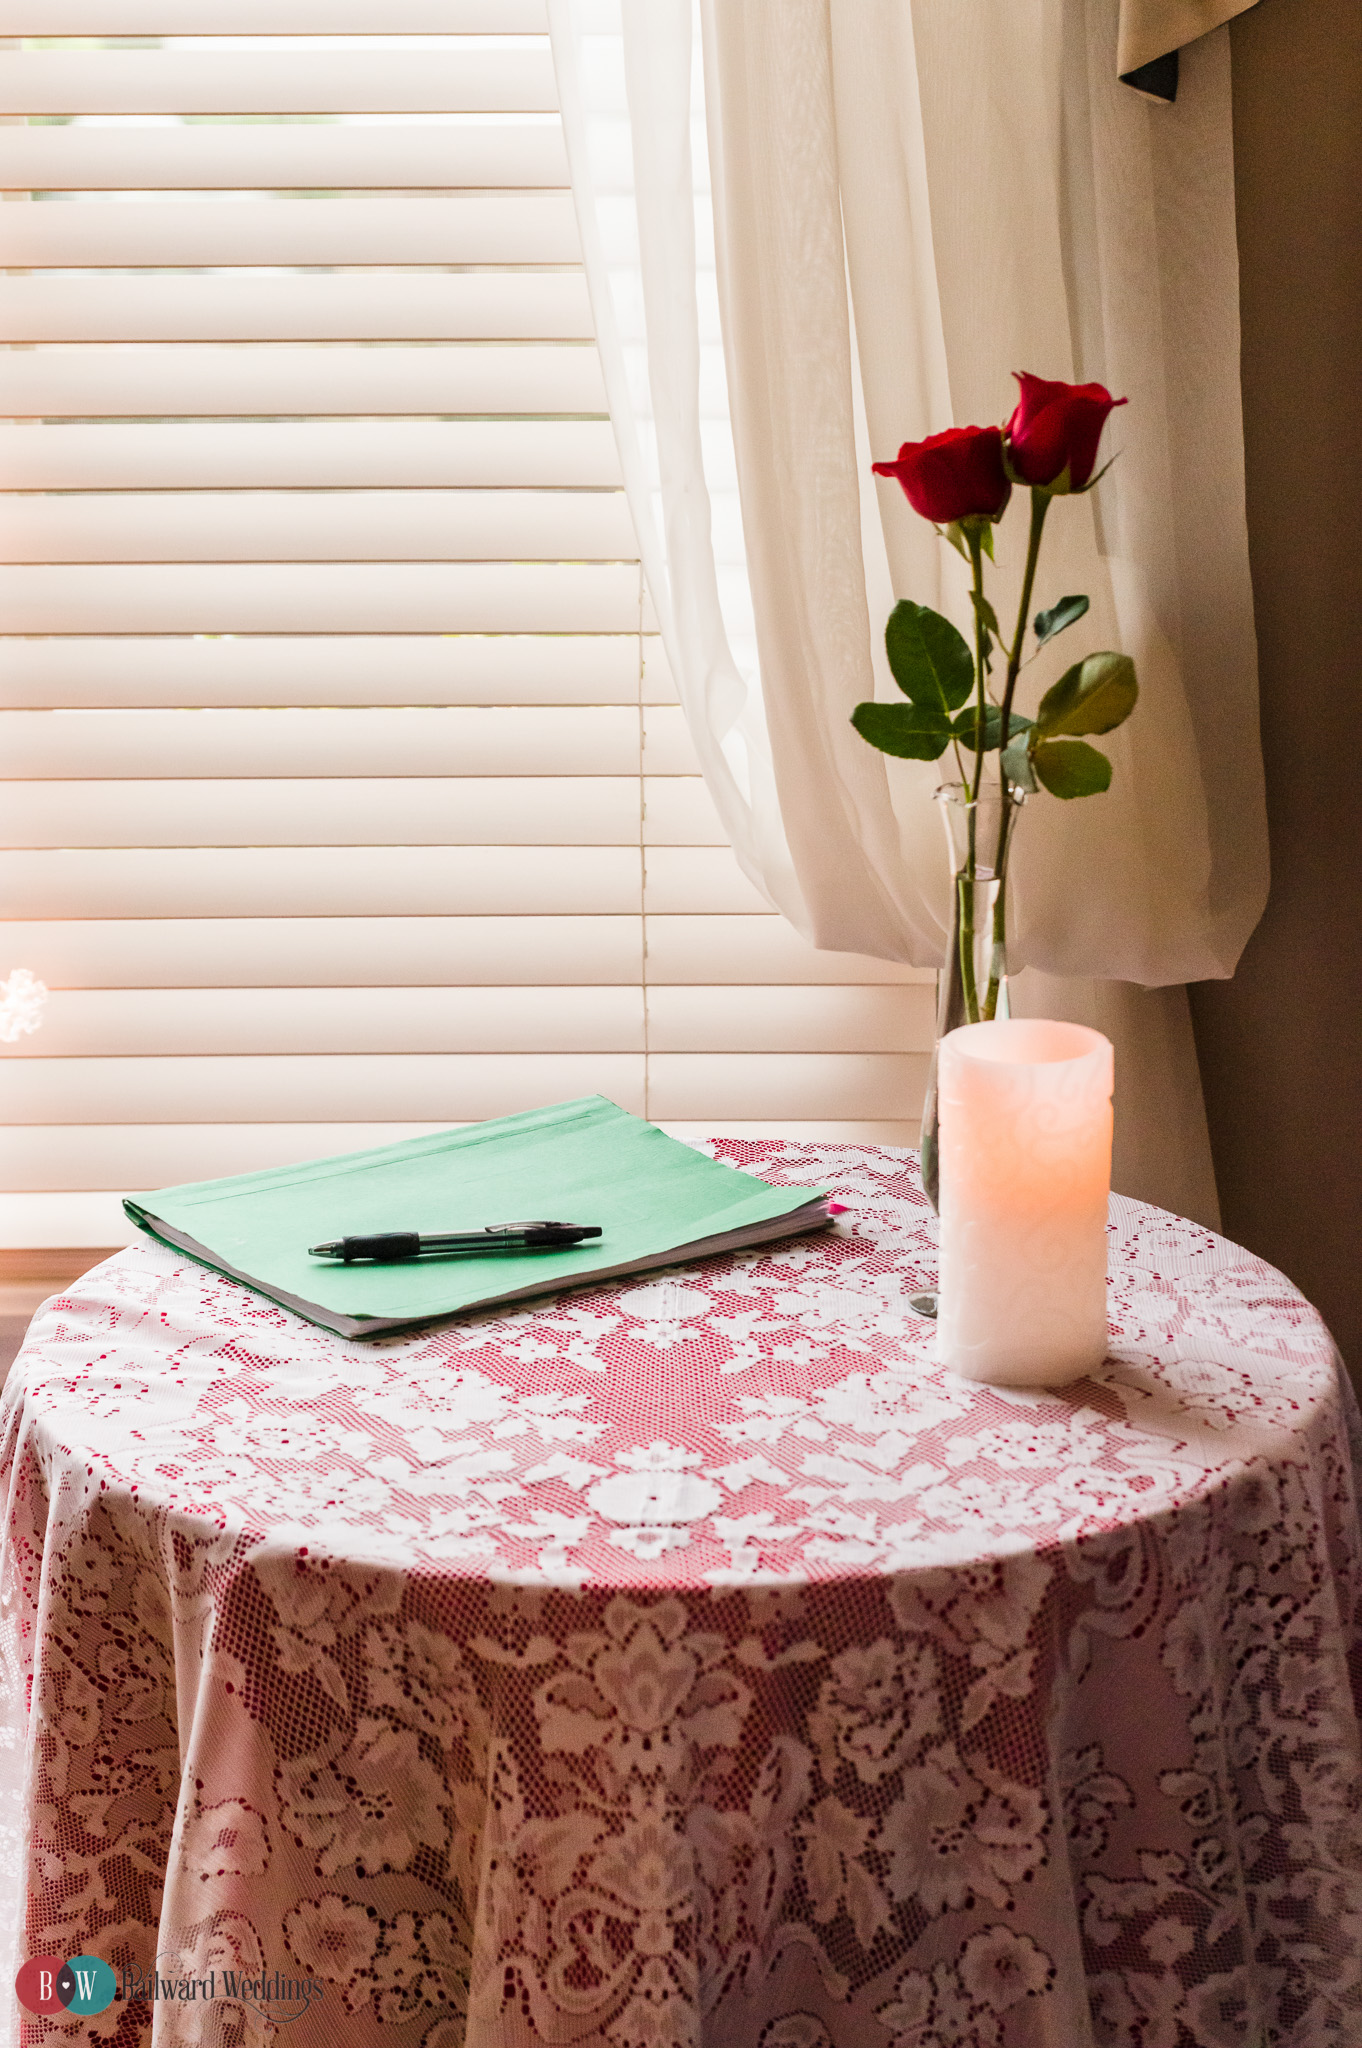 Rose on marriage paperwork signing table